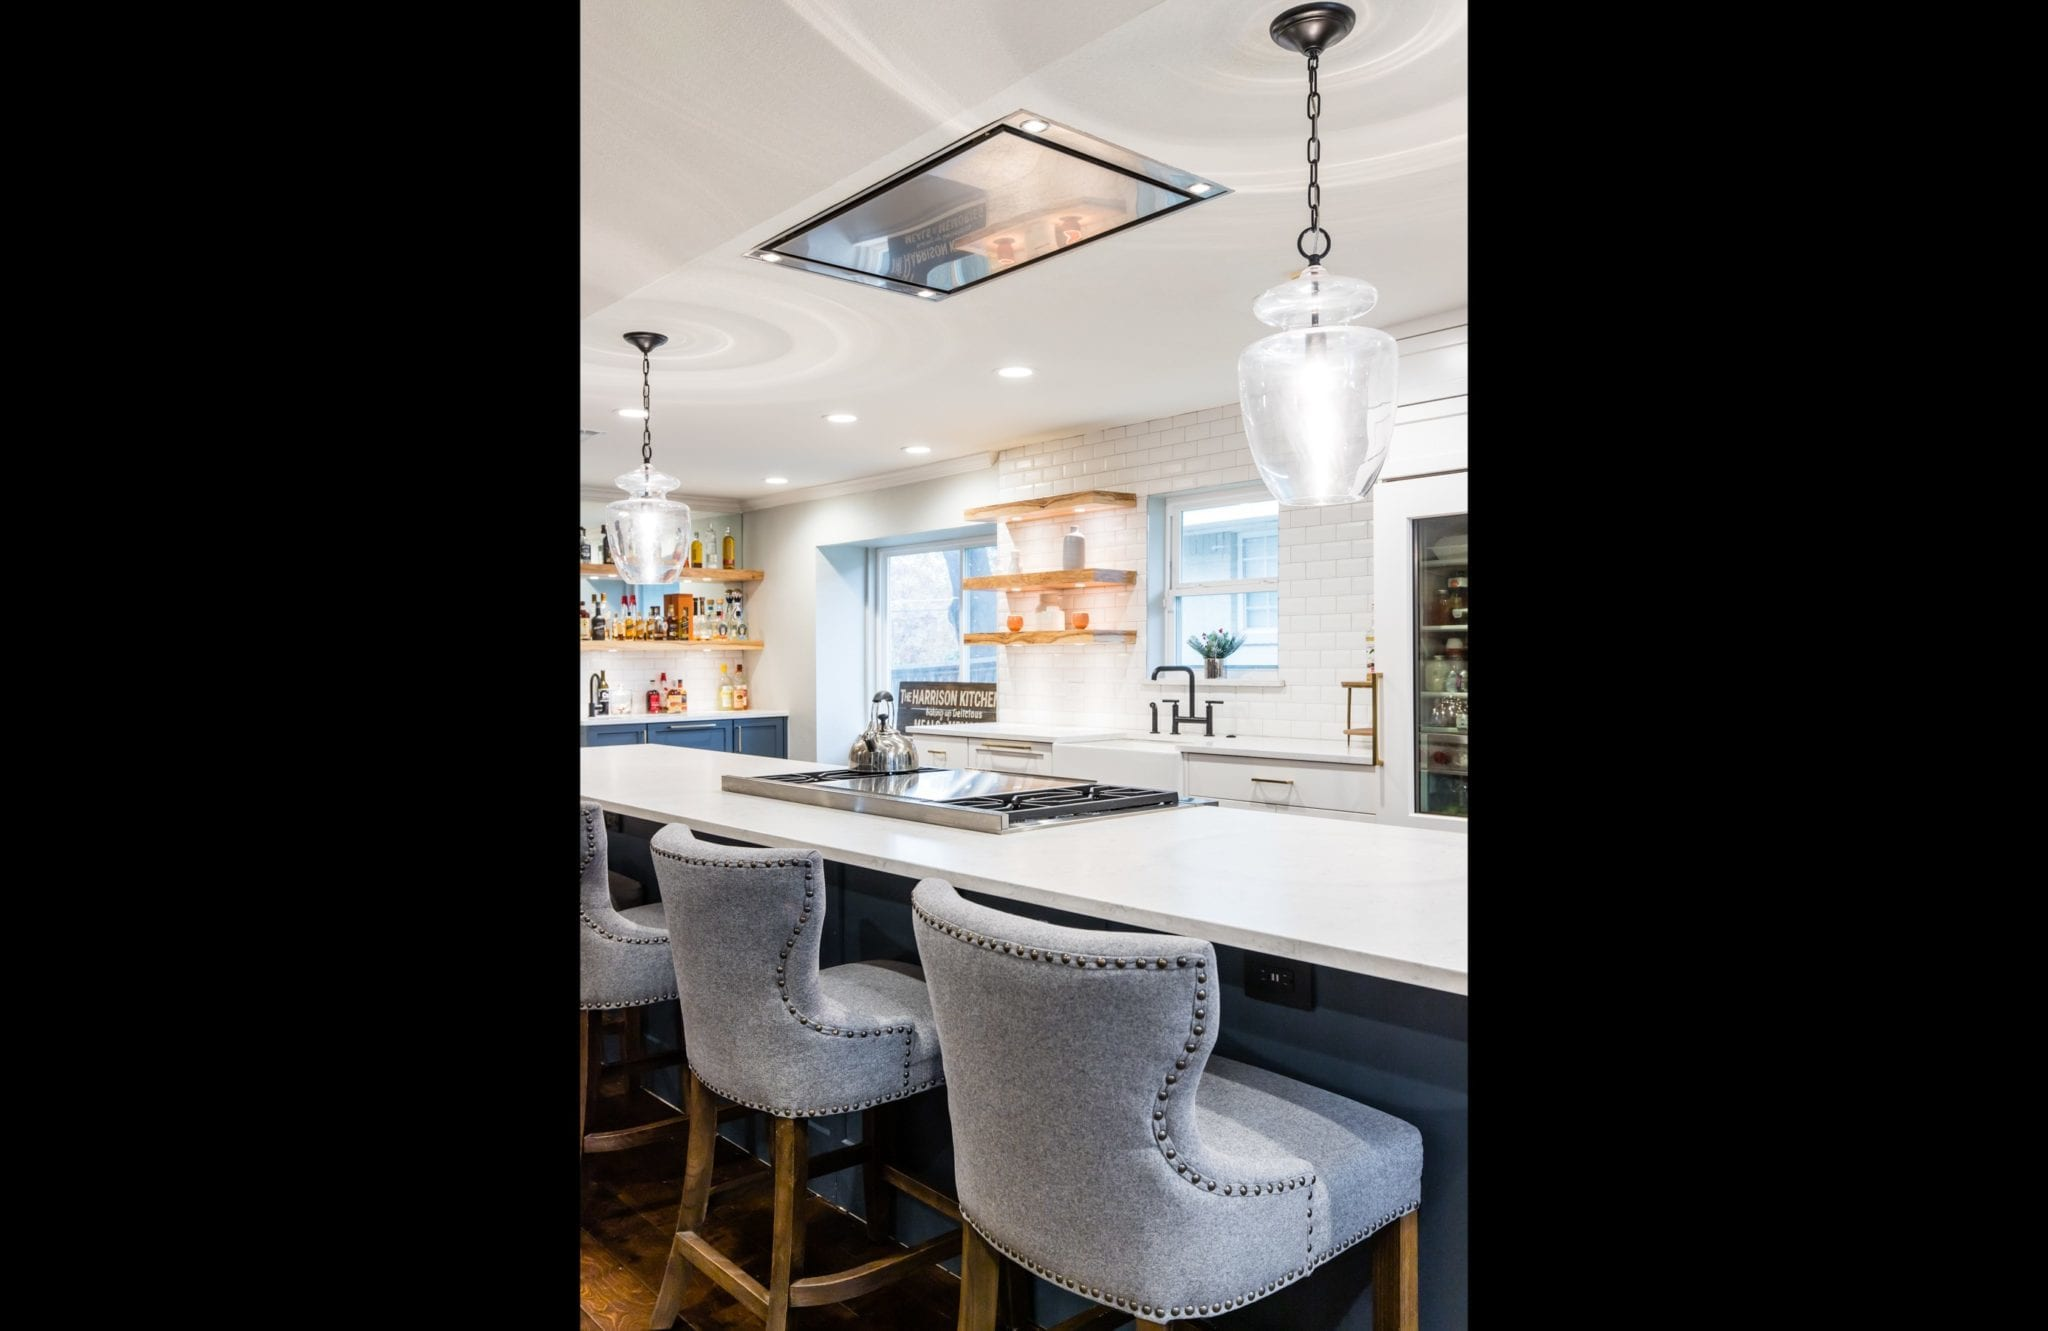 Single-Family-Home-Kitchen-Remodel-Custom-Cabinets-Countertops-Wolf-Stovetop-Open-Shelves-Kitchen-Island-Light-Fixtures-HighlandMeadows-75238_1